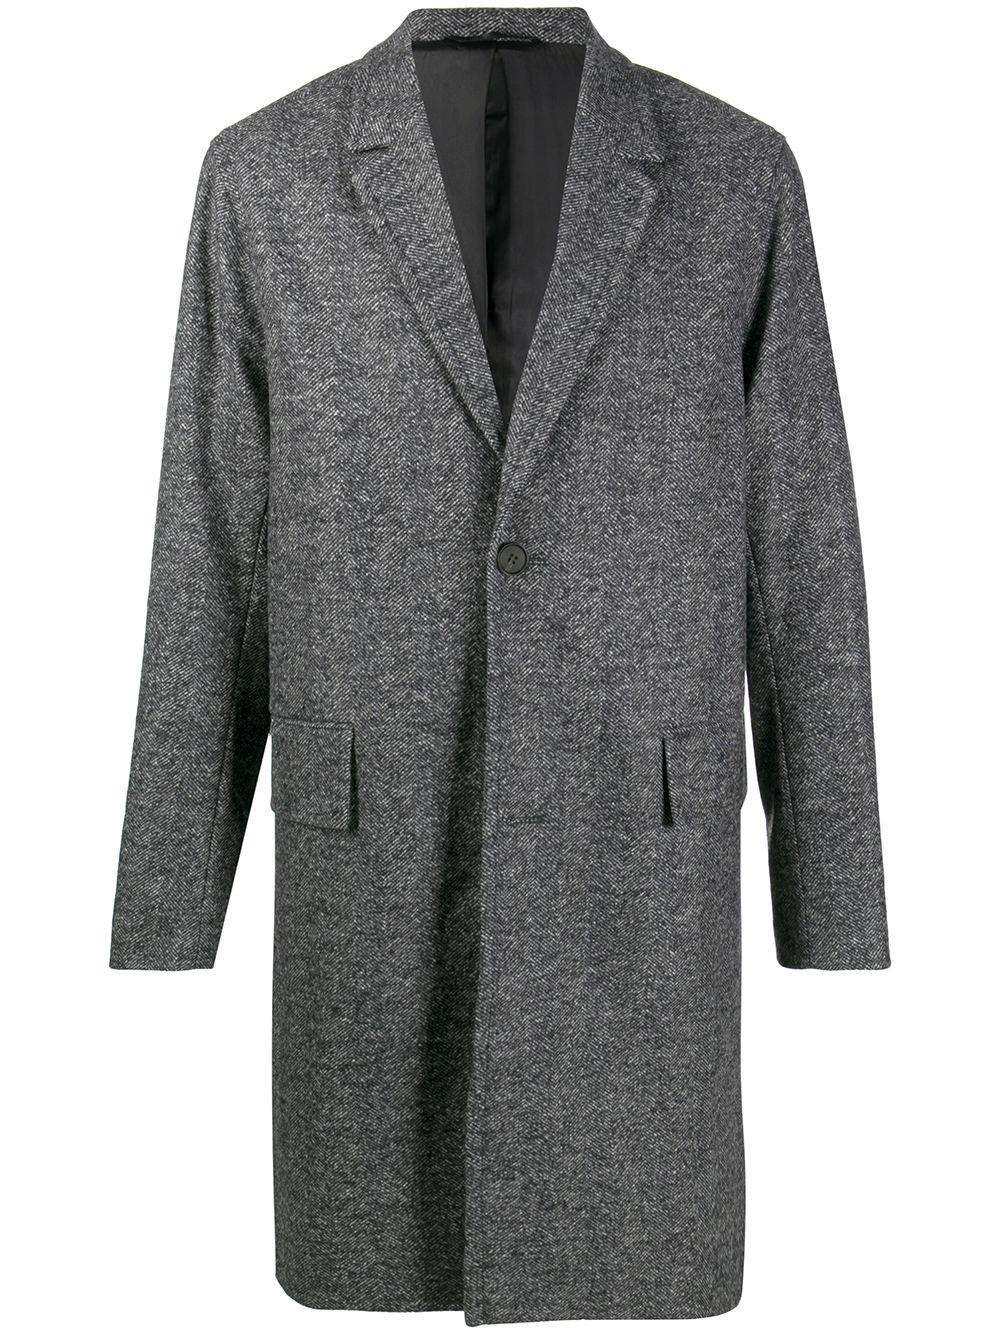 Officine Generale single-breasted coat